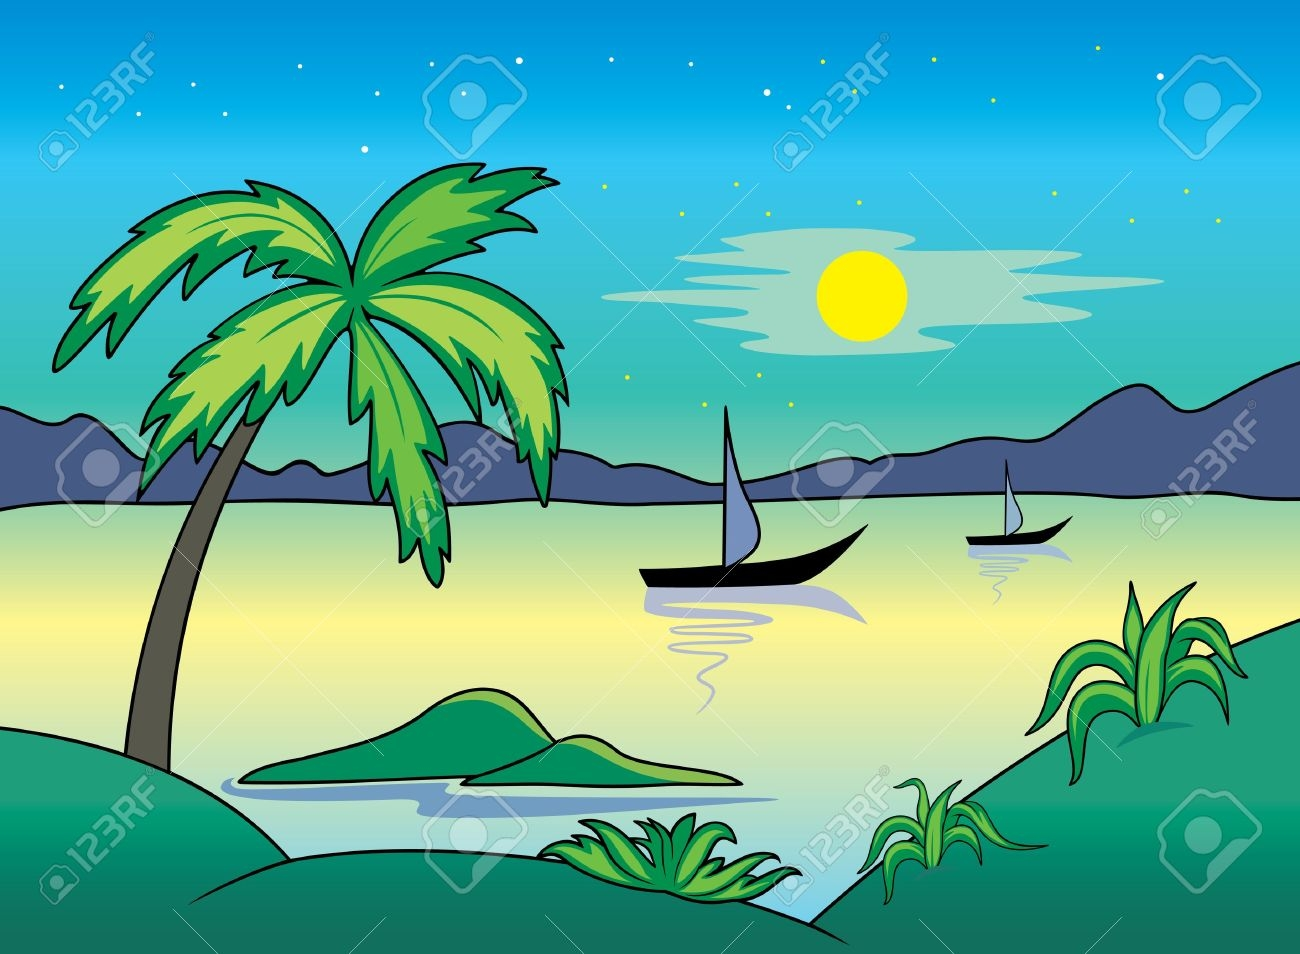 Landscapes clipart vector royalty free download Landscape clipart Best of Landscapes cliparts image 1 ... vector royalty free download